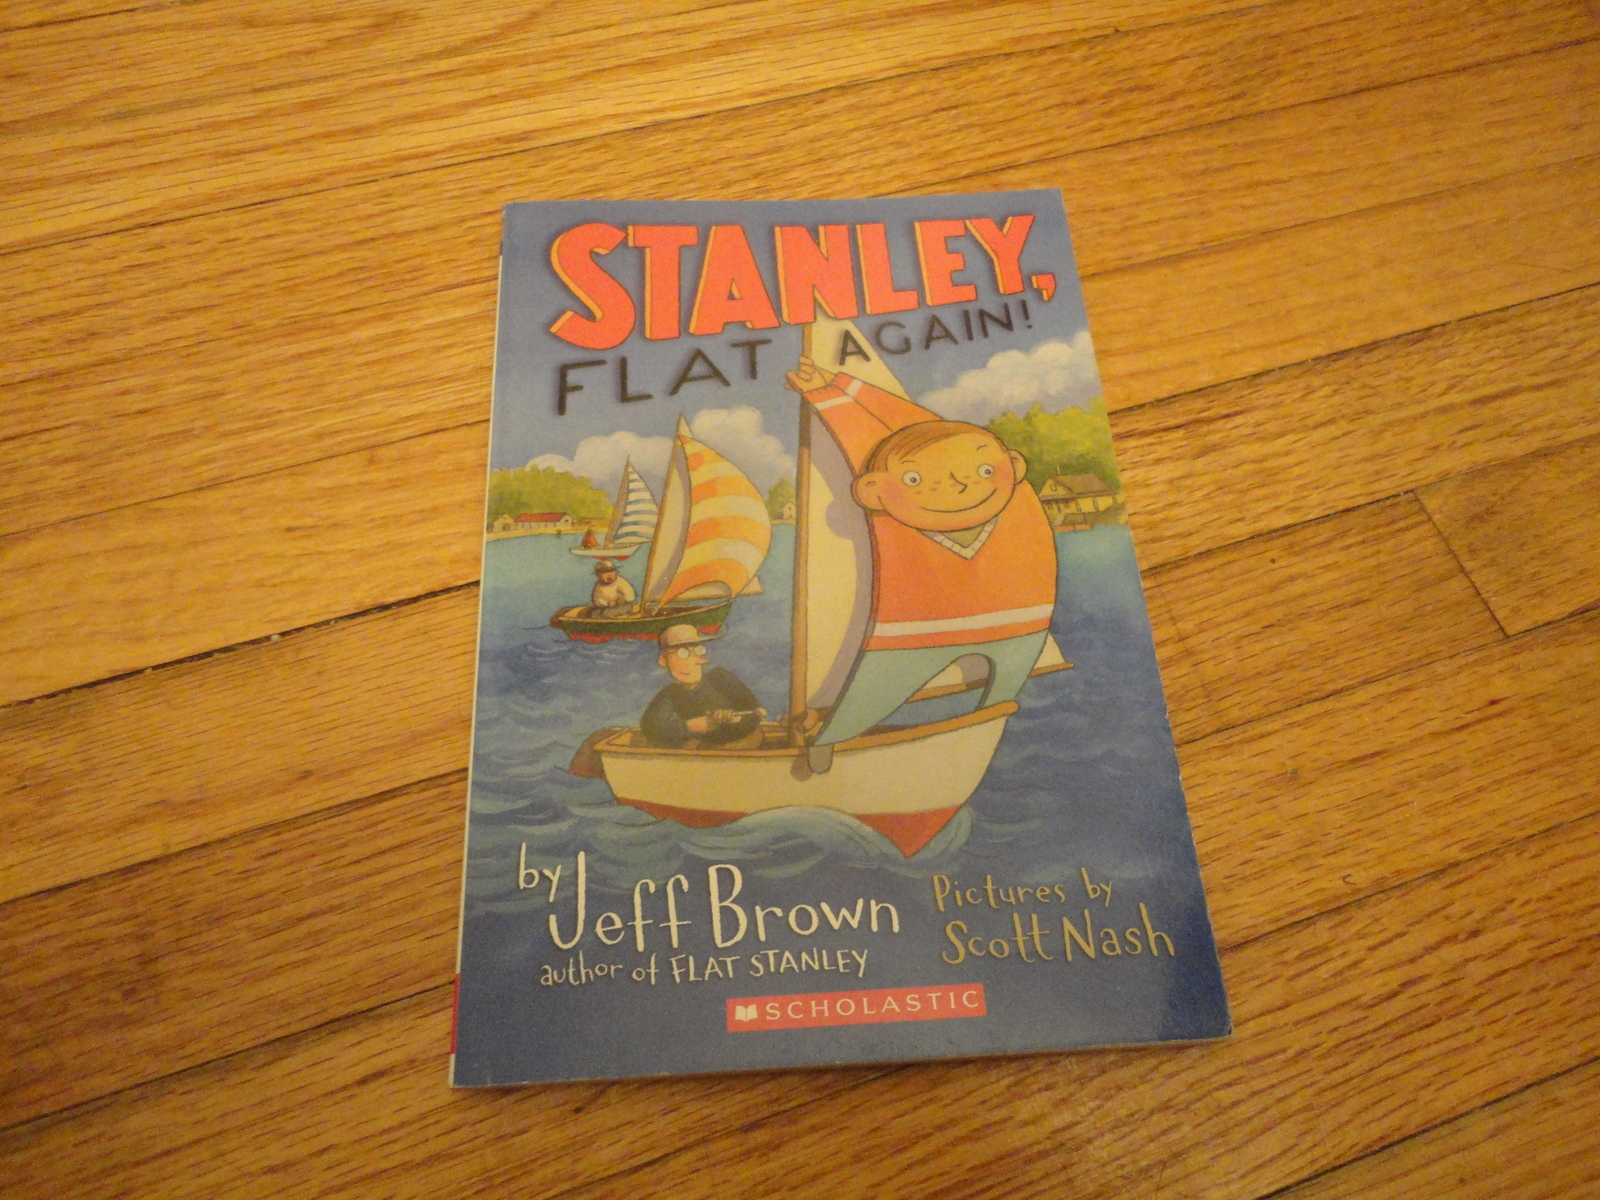 BOOK Jeff Brown 'Stanley, Flat Again' PB Scholastic Flat Stanley kids childrens